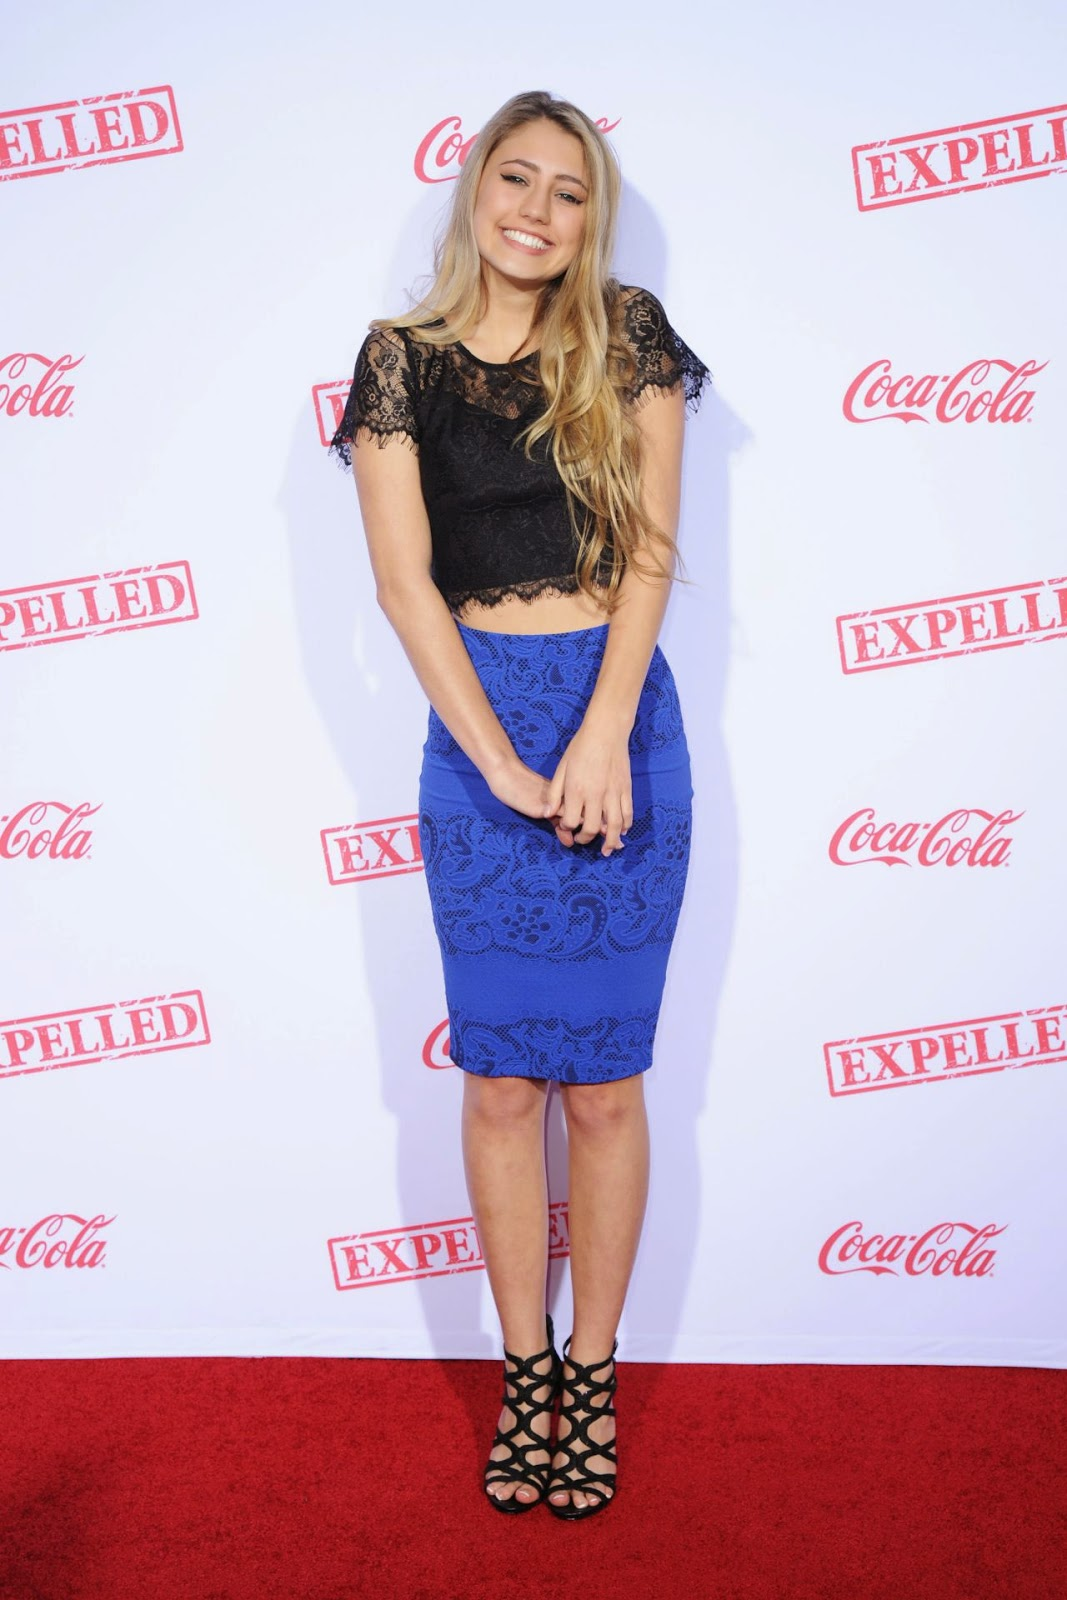 Lia Marie Johnson in a lace cropped top and skirt at the 'Expelled' Westwood premiere